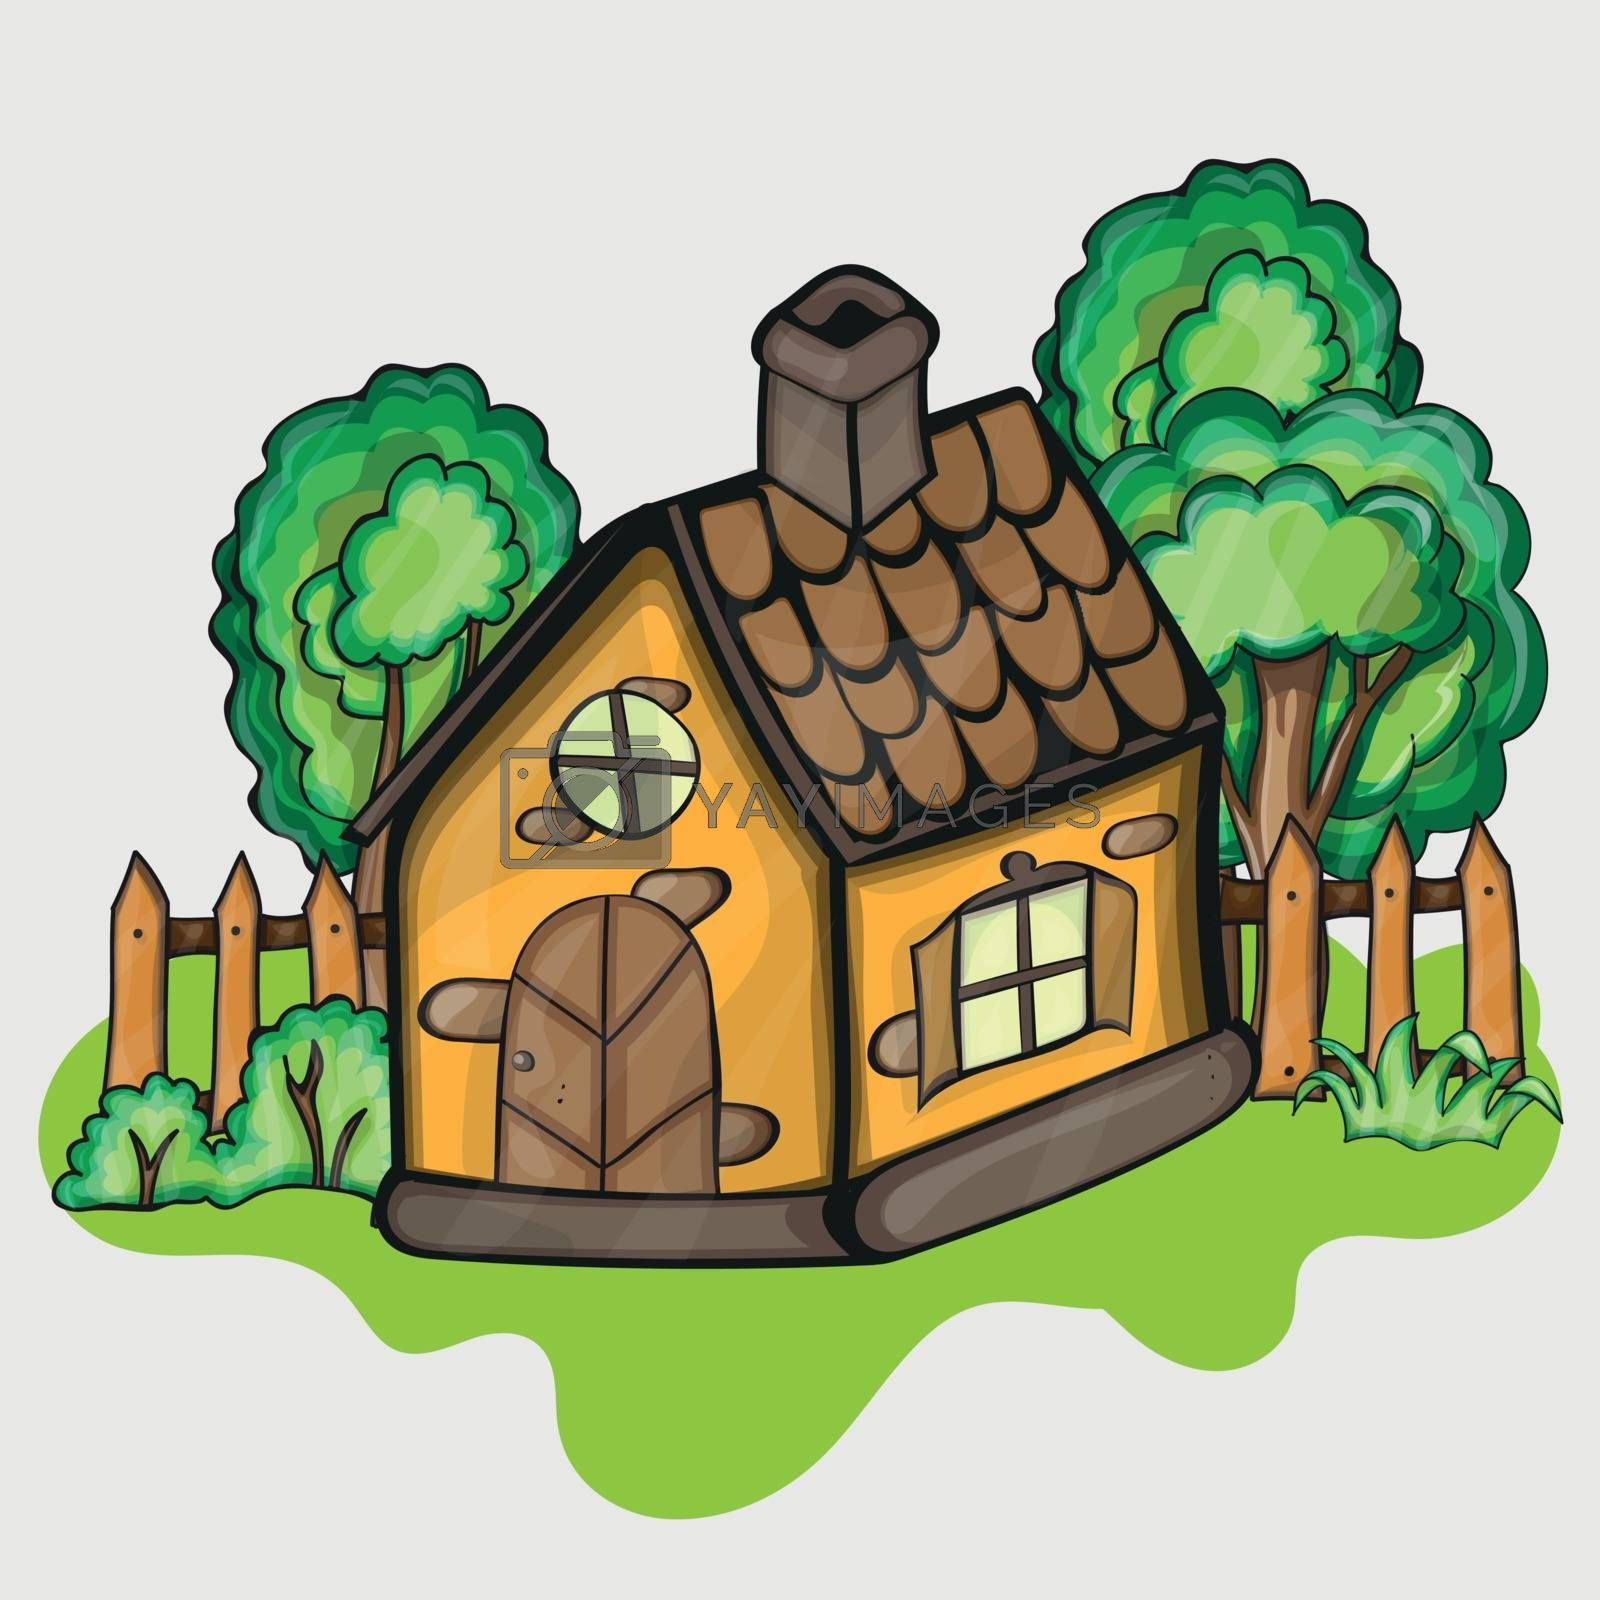 Illustration of a cartoon house in spring or summer season